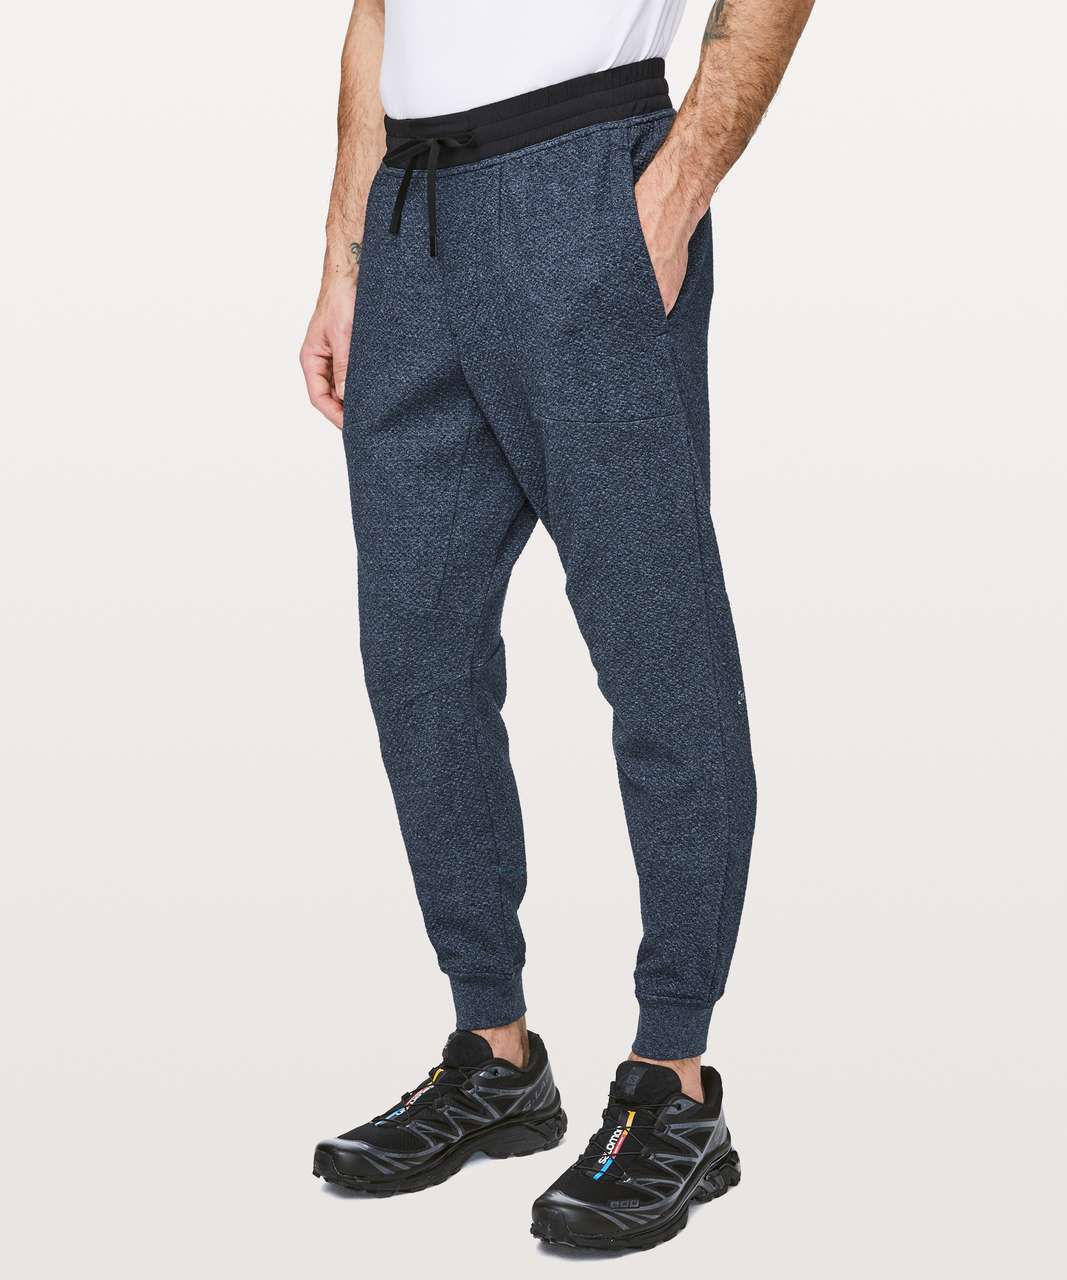 Lululemon At Ease Jogger - Heathered Speckled Jet Blue / Black